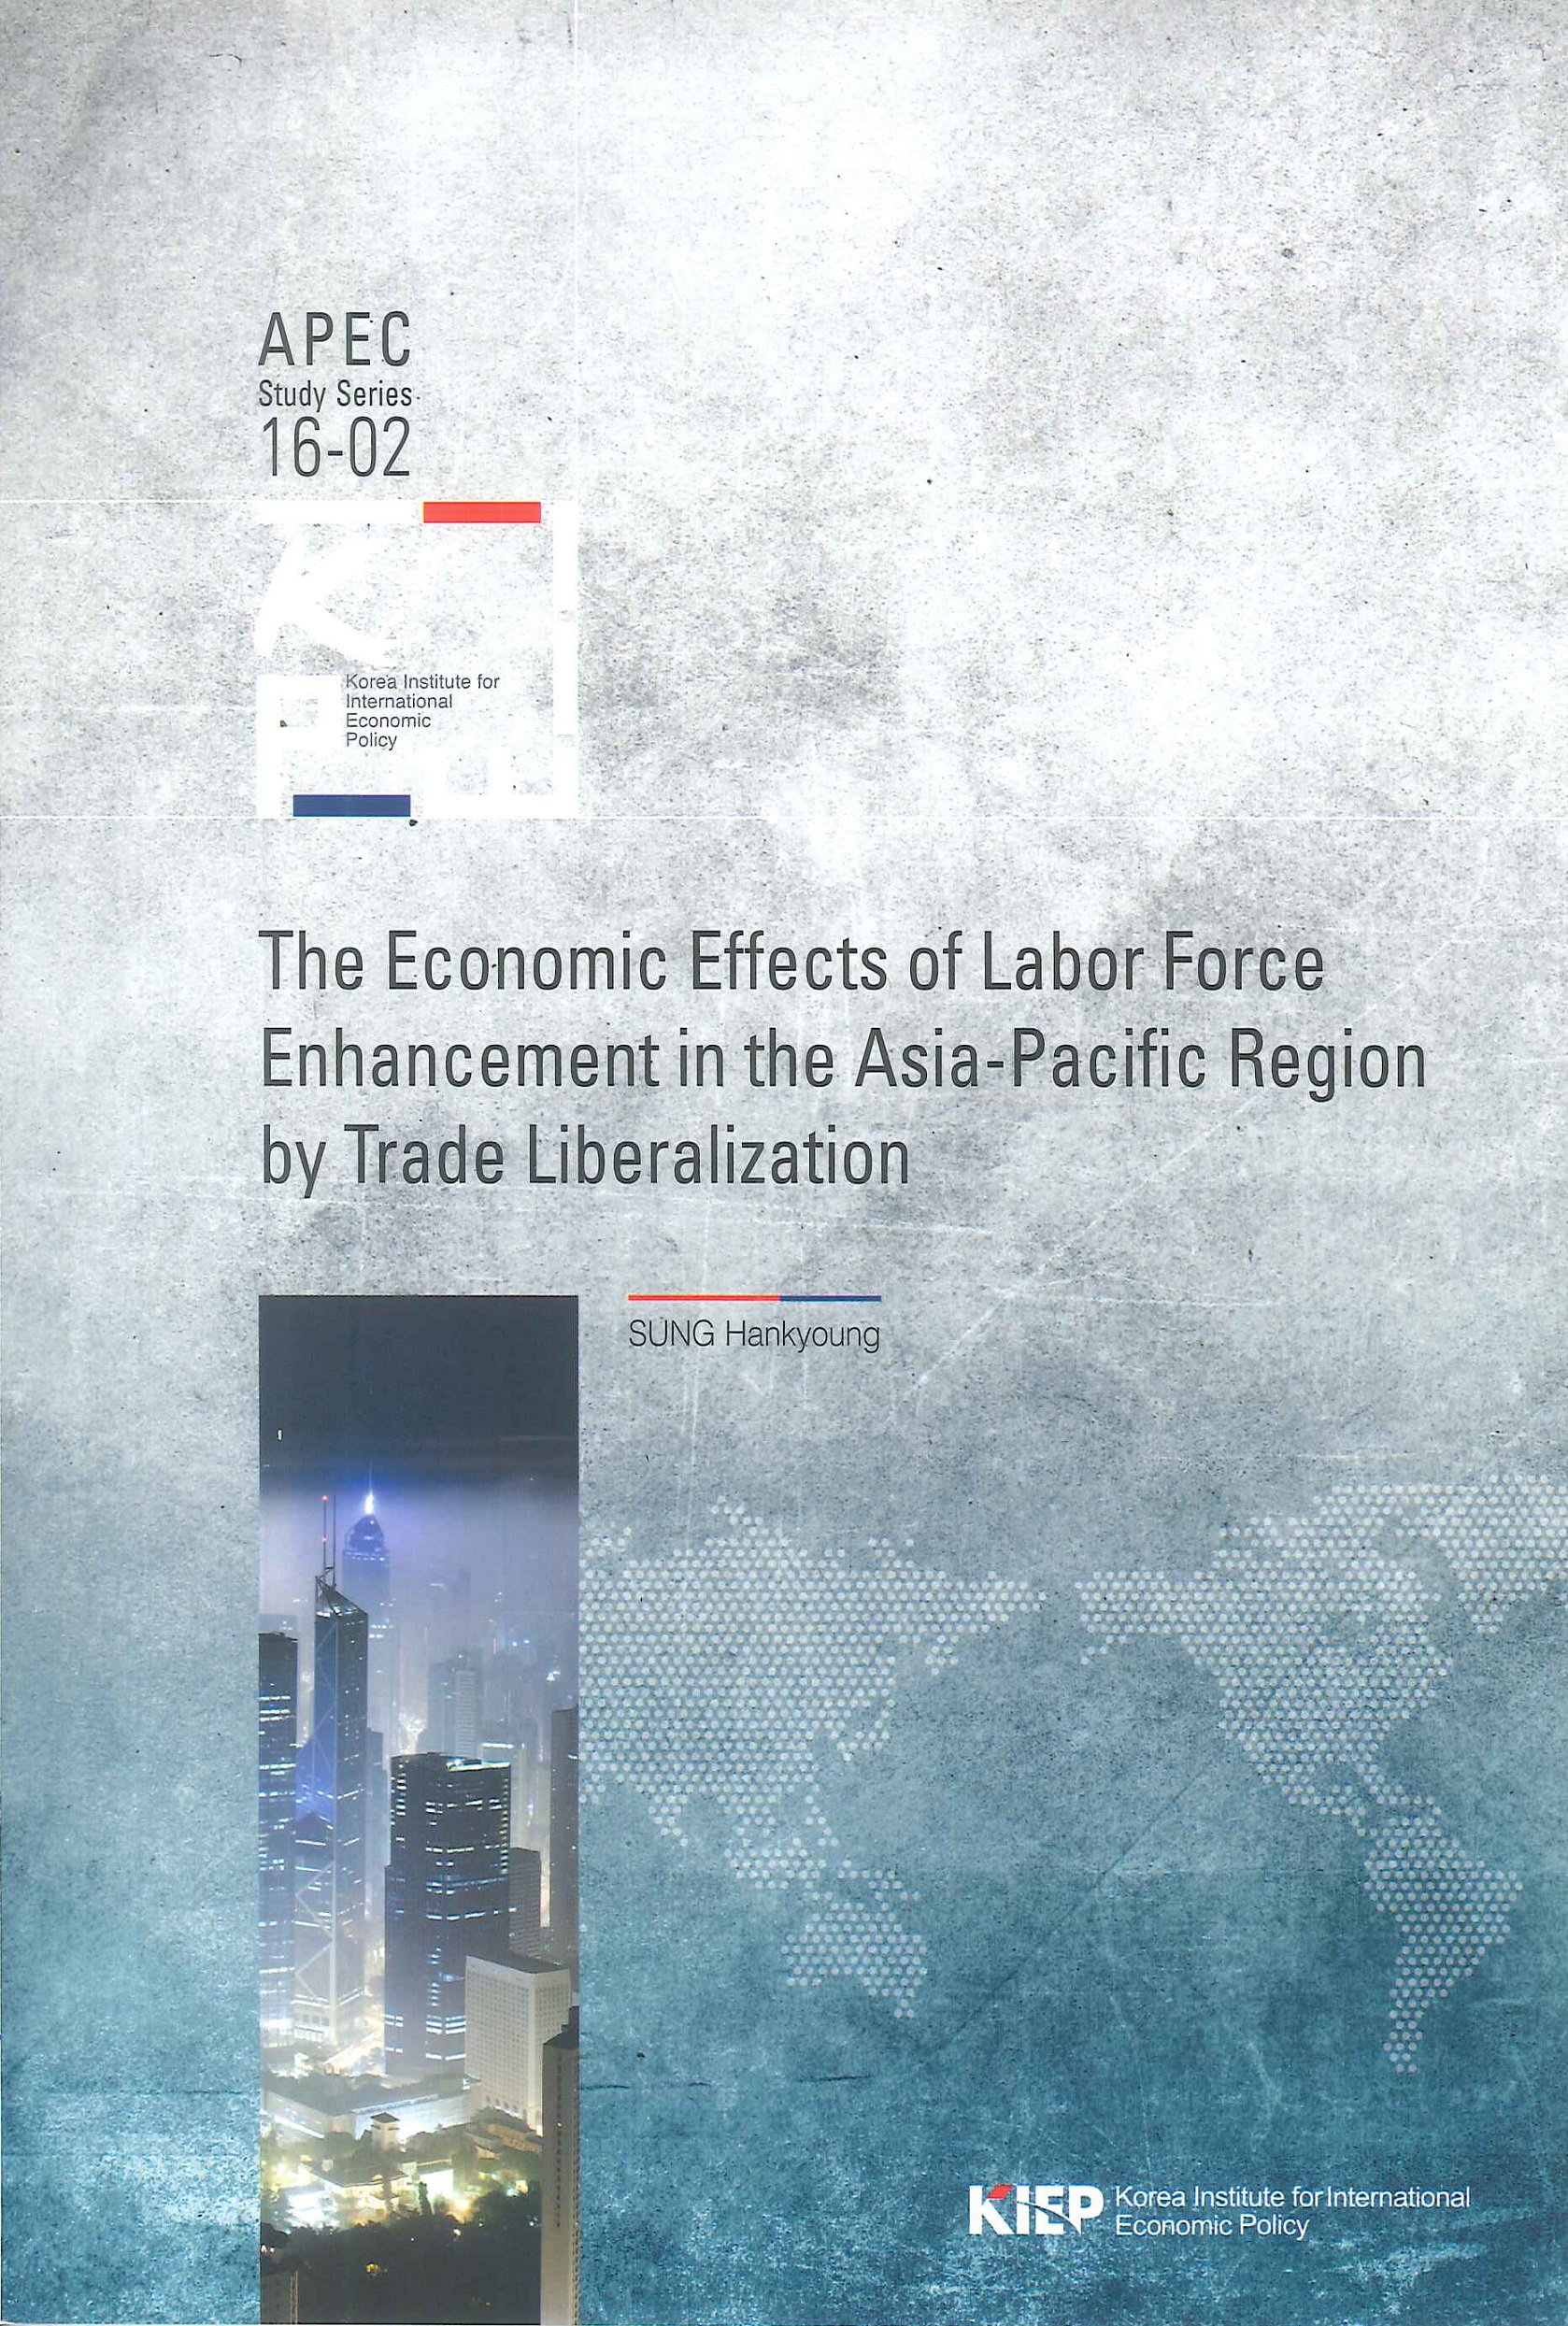 The economic effects of labor force enhancement in the Asia-pacific region by trade liberalization